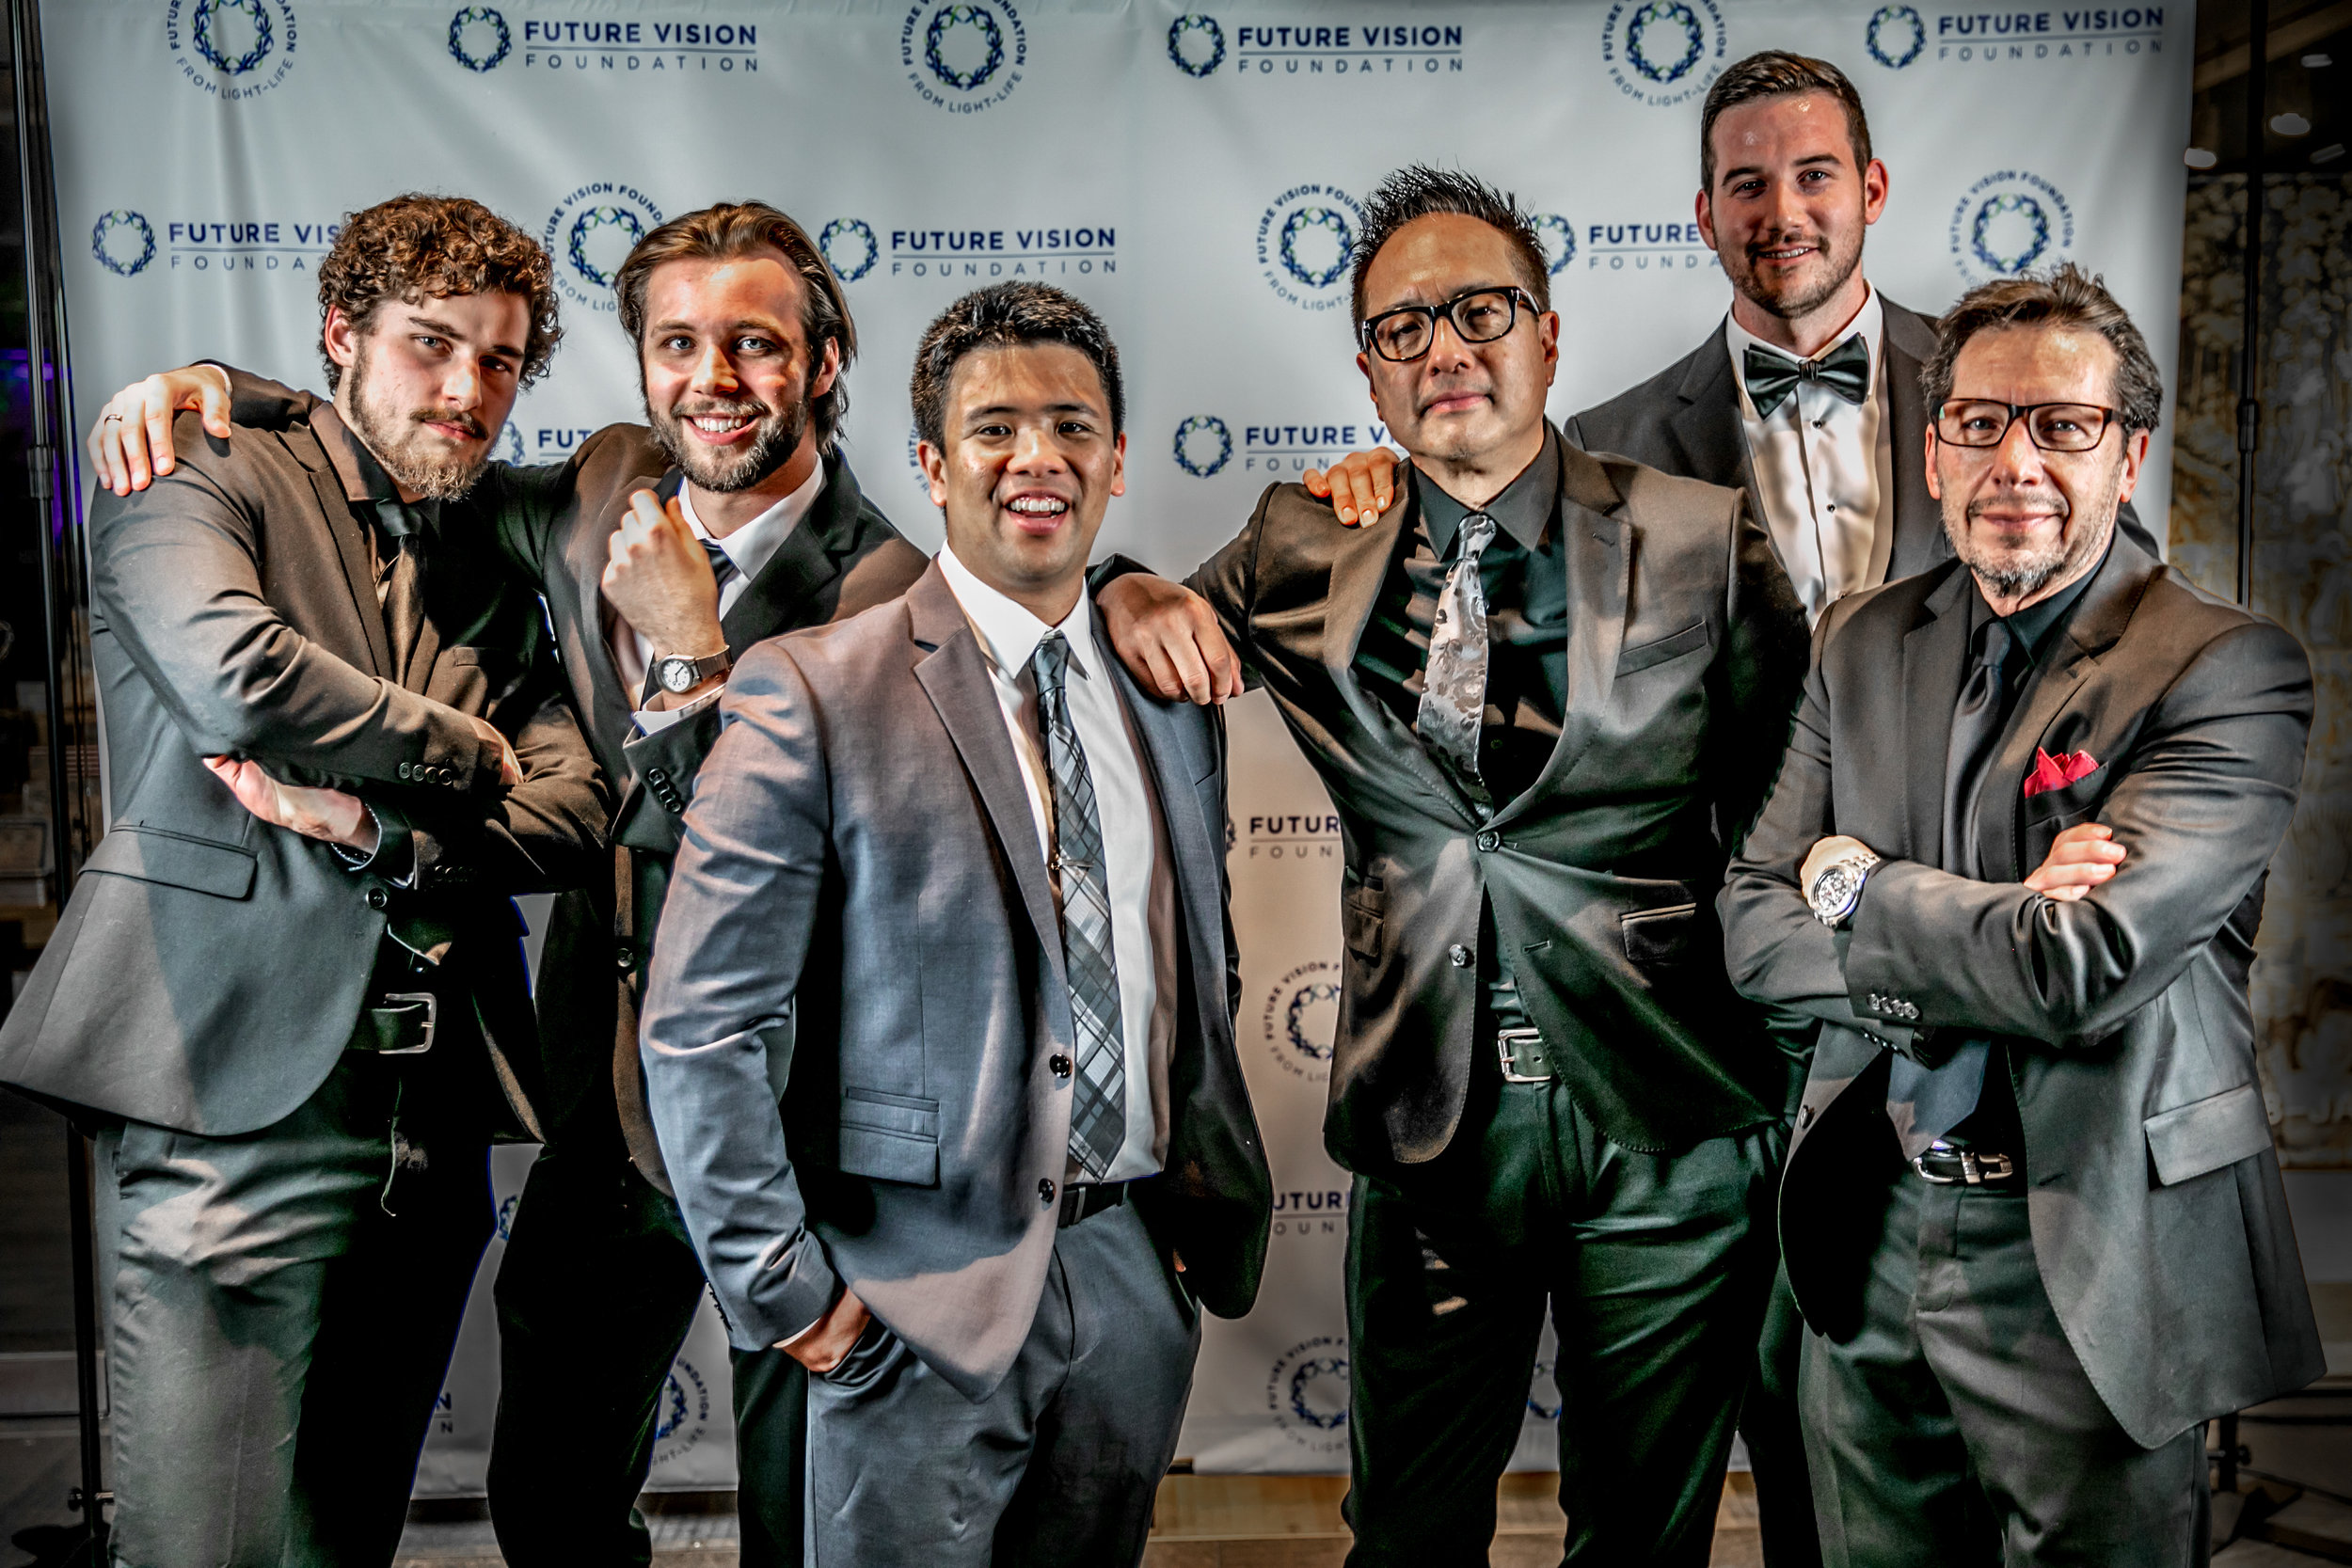 Alec, Adam, myself, James P., Tico, and Henry looking dapper at the Future Vision Foundation Awards.